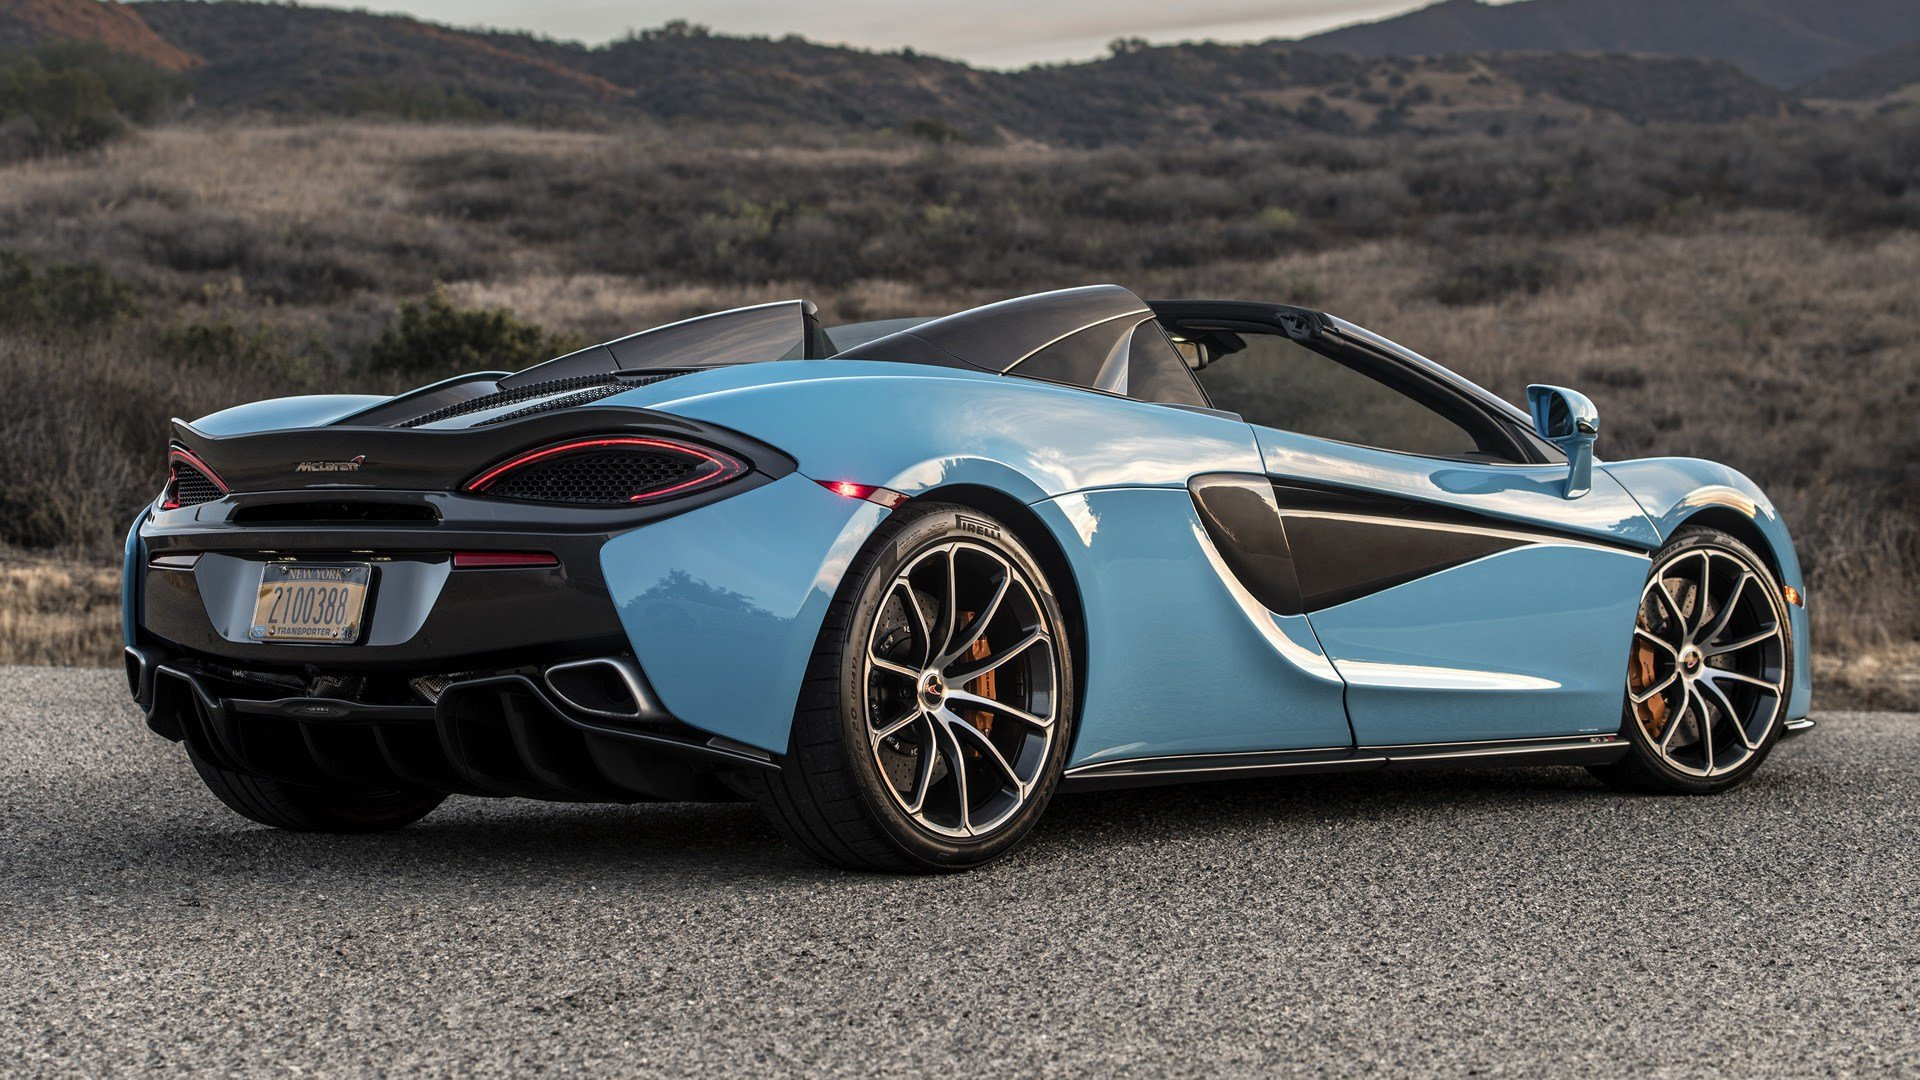 New 2018 Mclaren 570S Spider Us Wallpapers And Hd Images On This Month